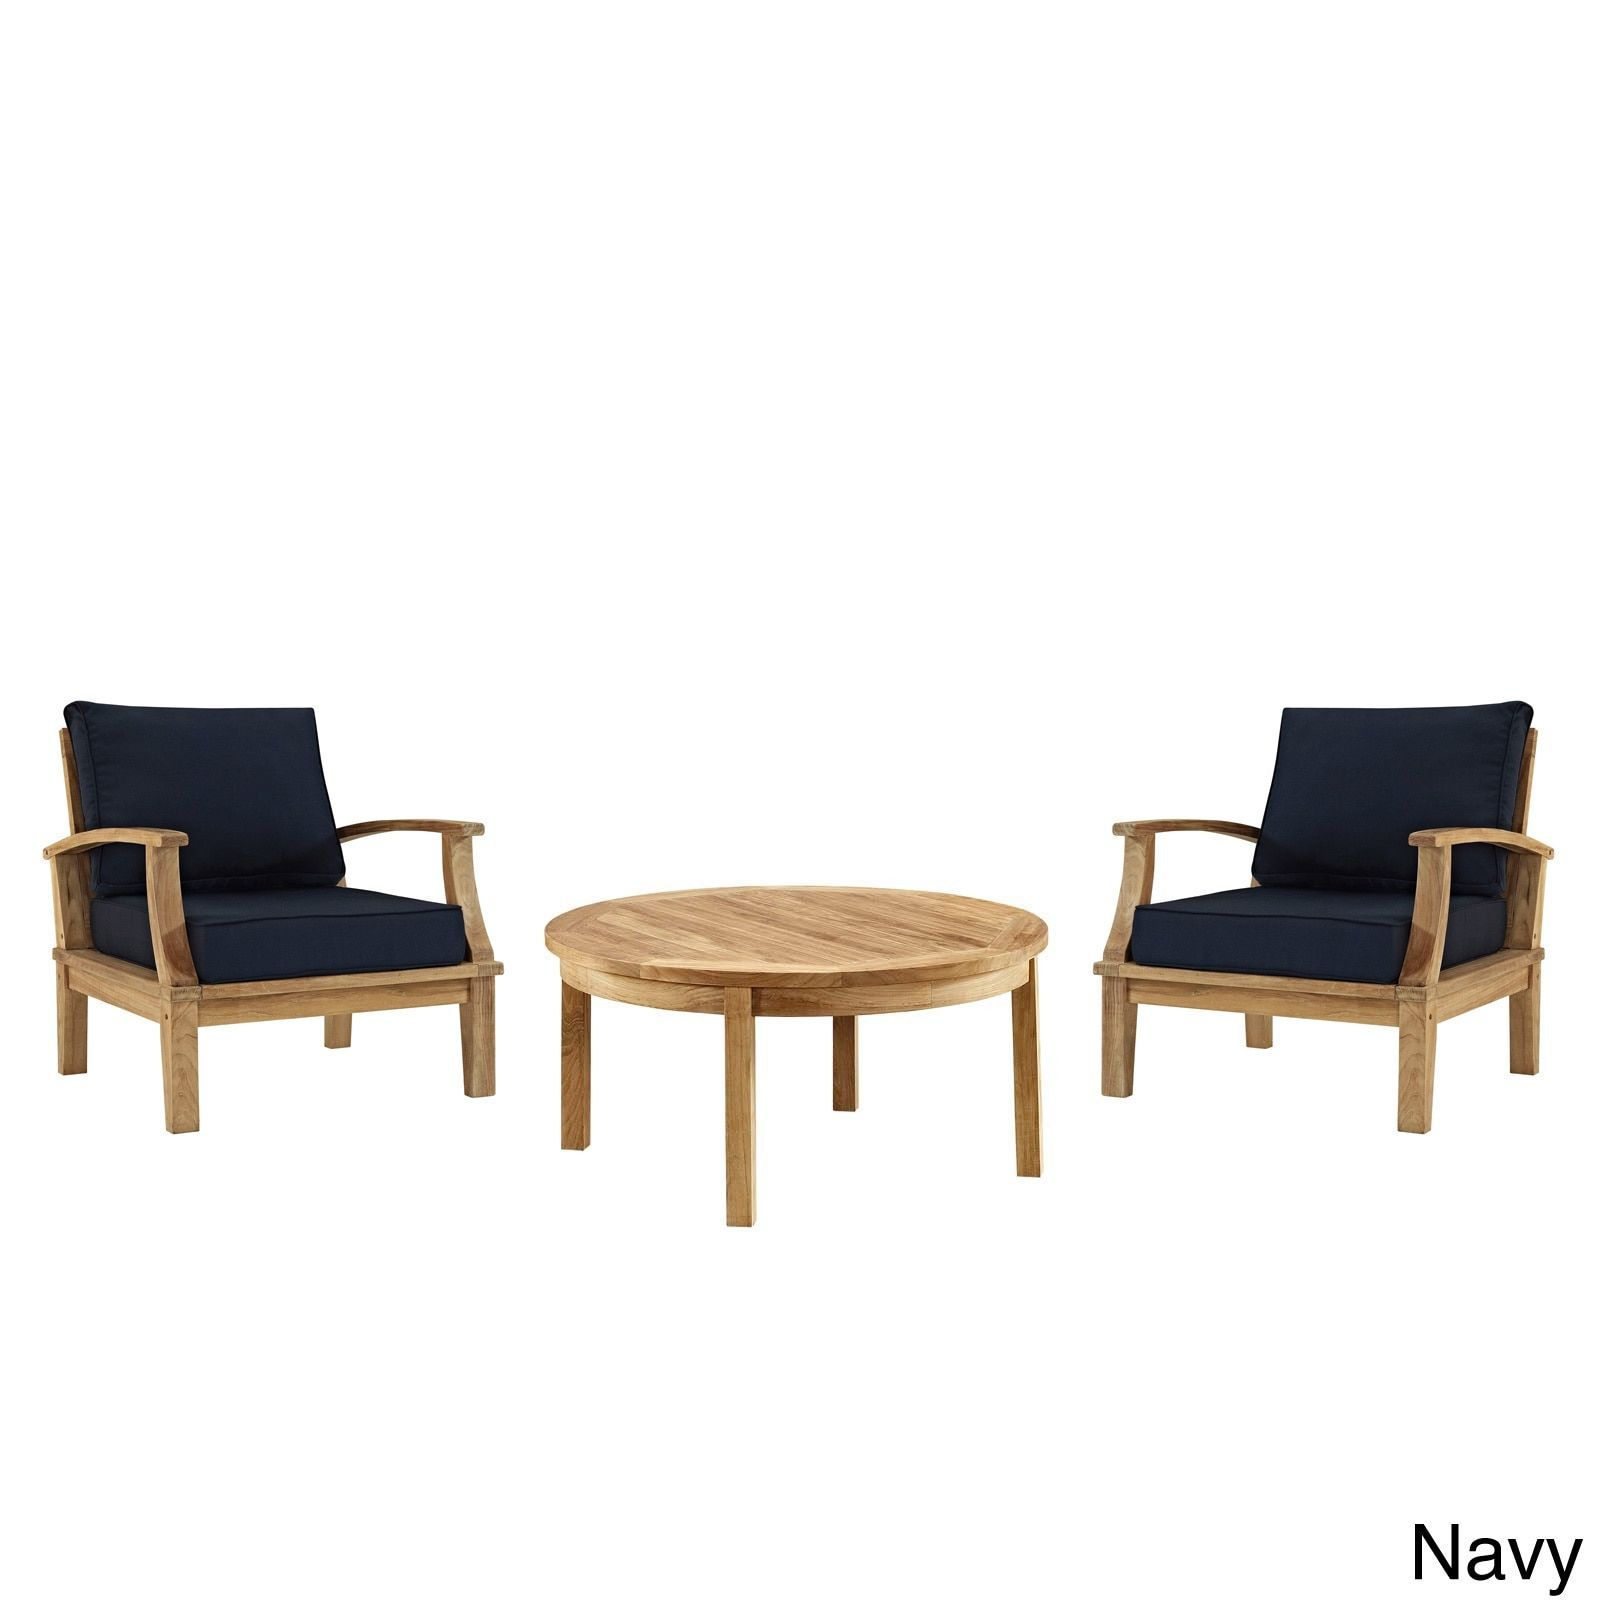 Modway pier 3 piece outdoor patio teak sofa set navy blue patio furniture